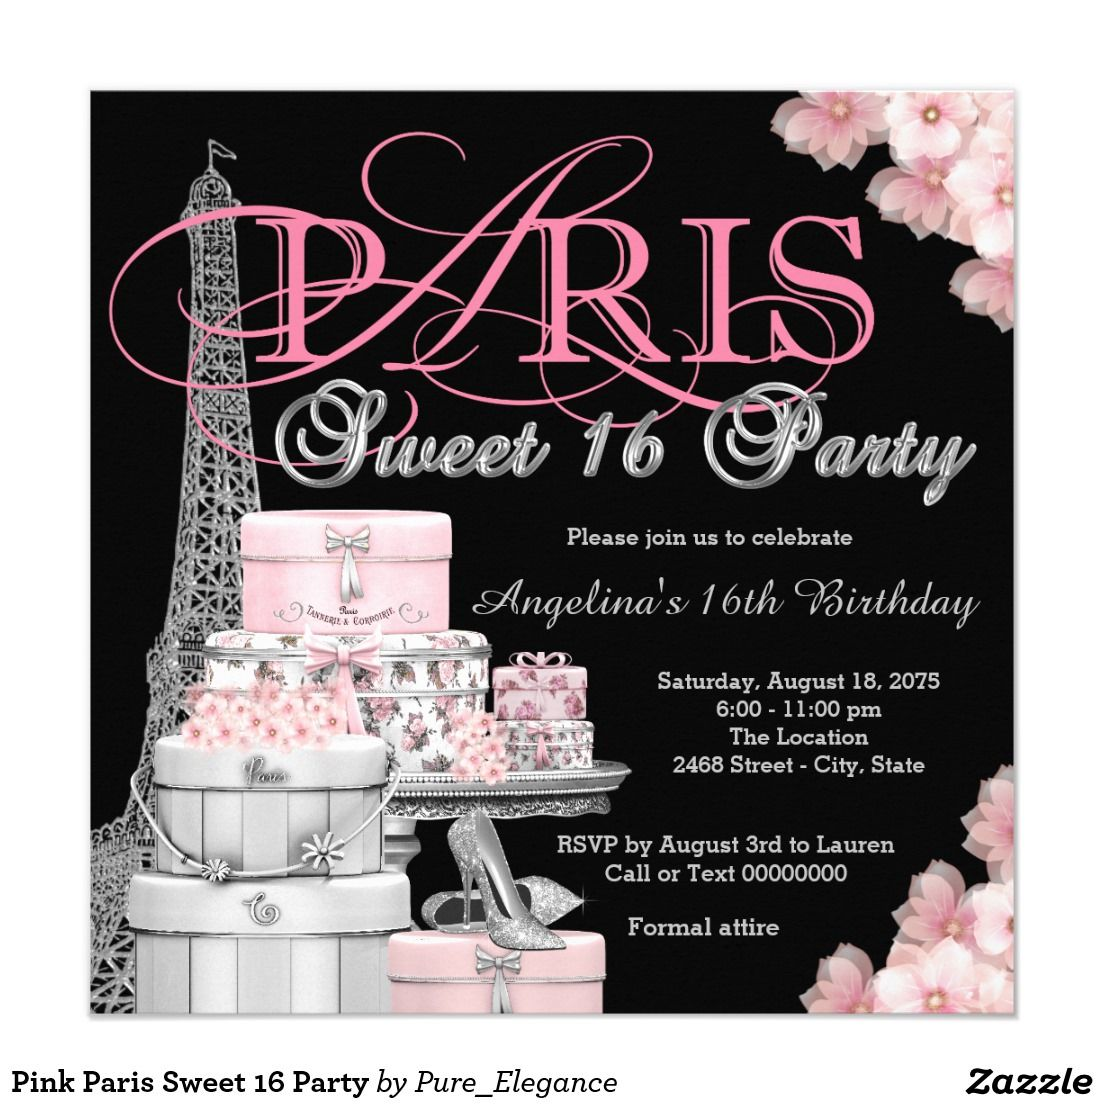 Pink Paris Sweet 16 Party Invitation | Sweet Sixteen Invitations ...